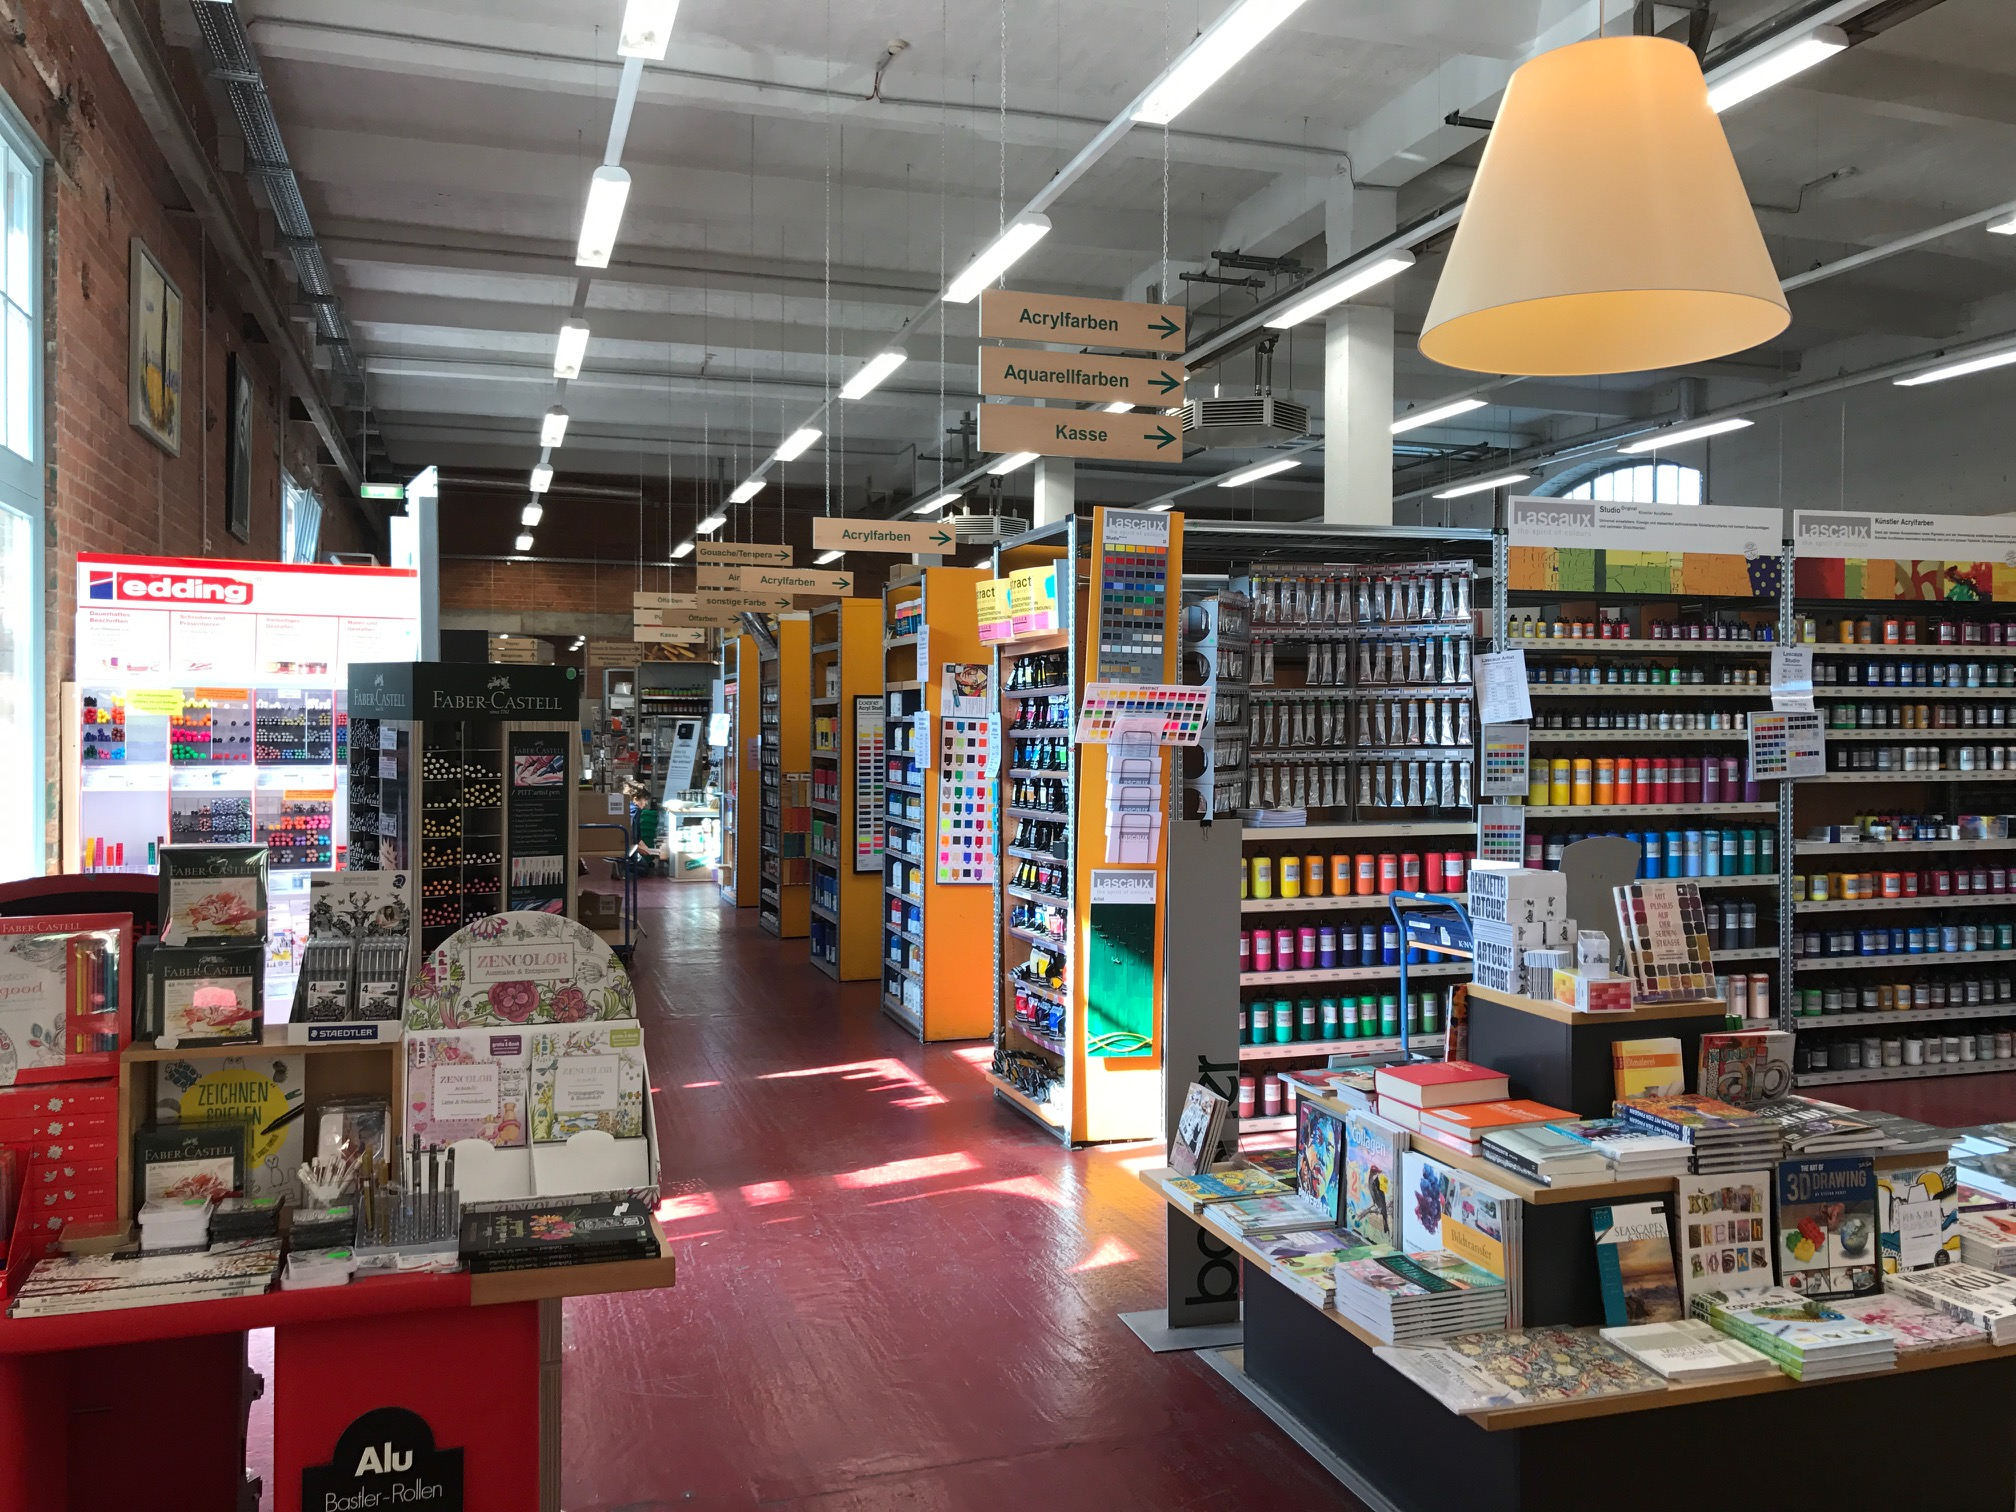 Huge art supply store located at Spinnerei art campus, Leipzig, Germany